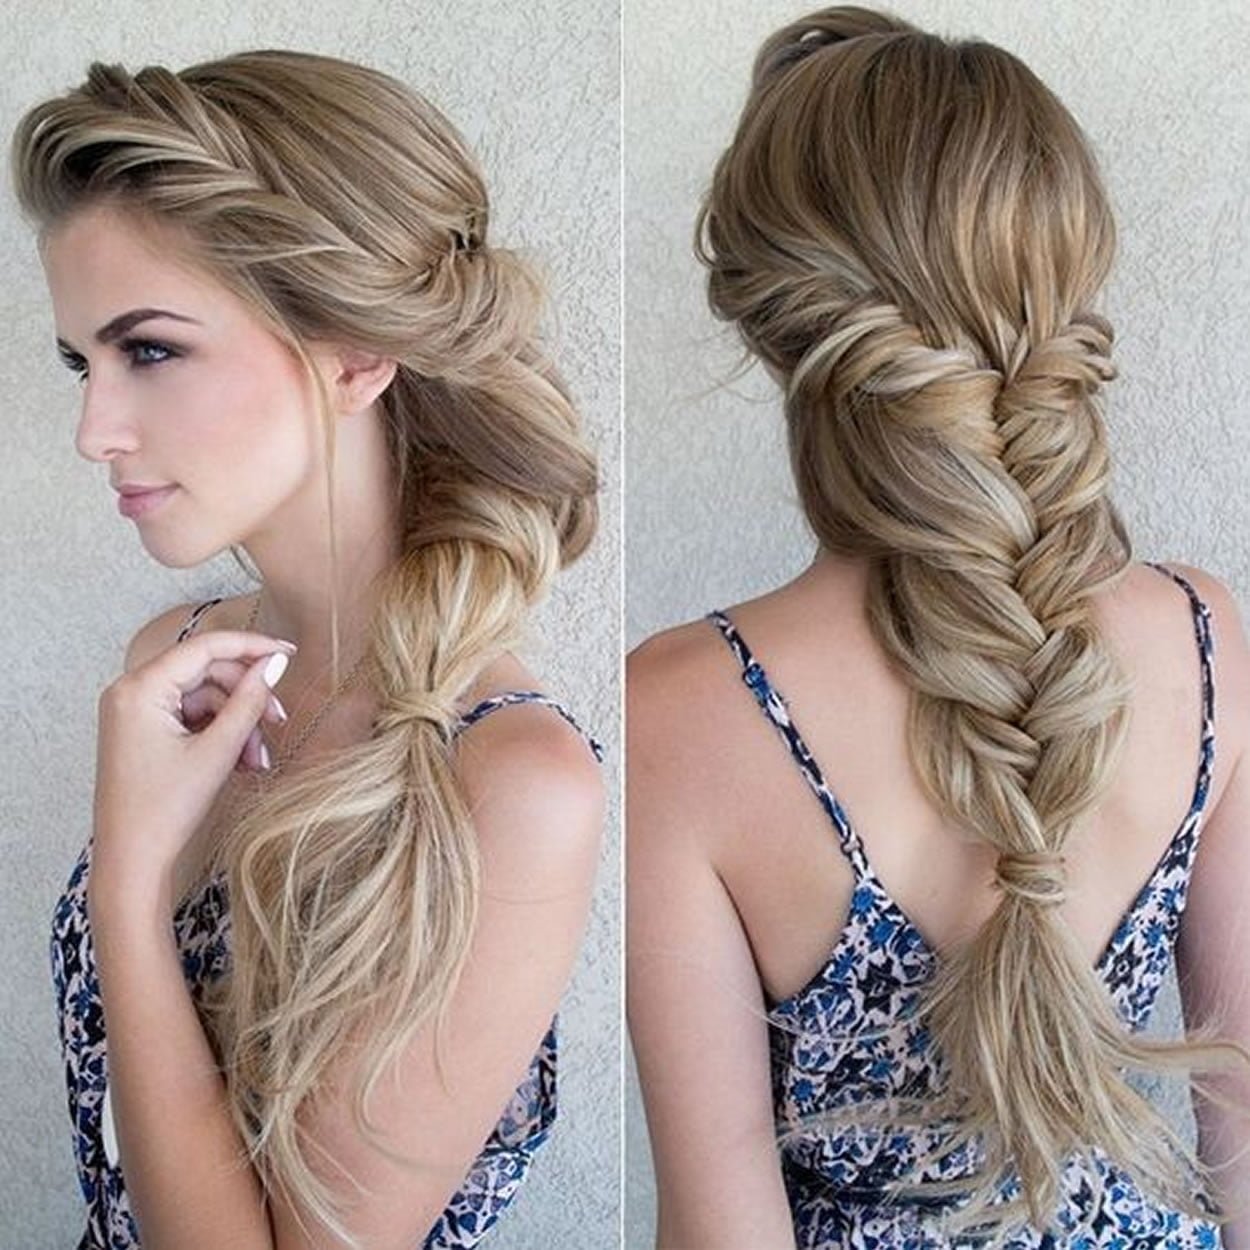 2018 Christmas Hairstyles Braided Hairstyles For The 2018 Christmas